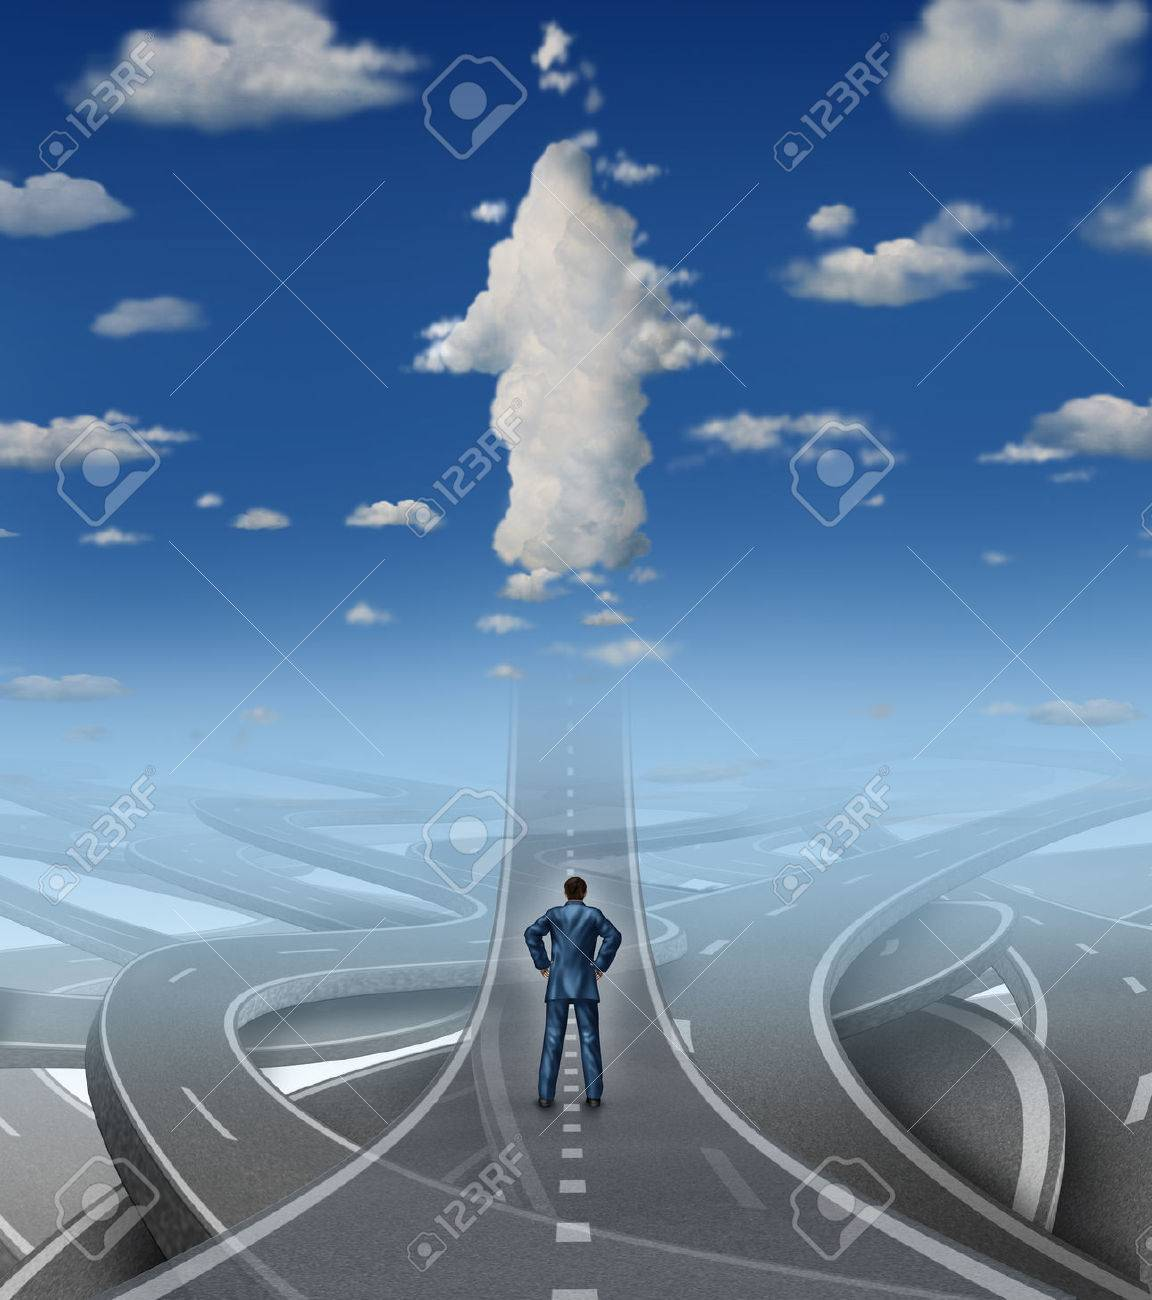 Career development business concept as a businessman standing in front of a group of tangled roads and streets with one straight highway leading to an arrow cloud as a metaphor for leadership vision overcoming stress and a confusion crisis - 28426369